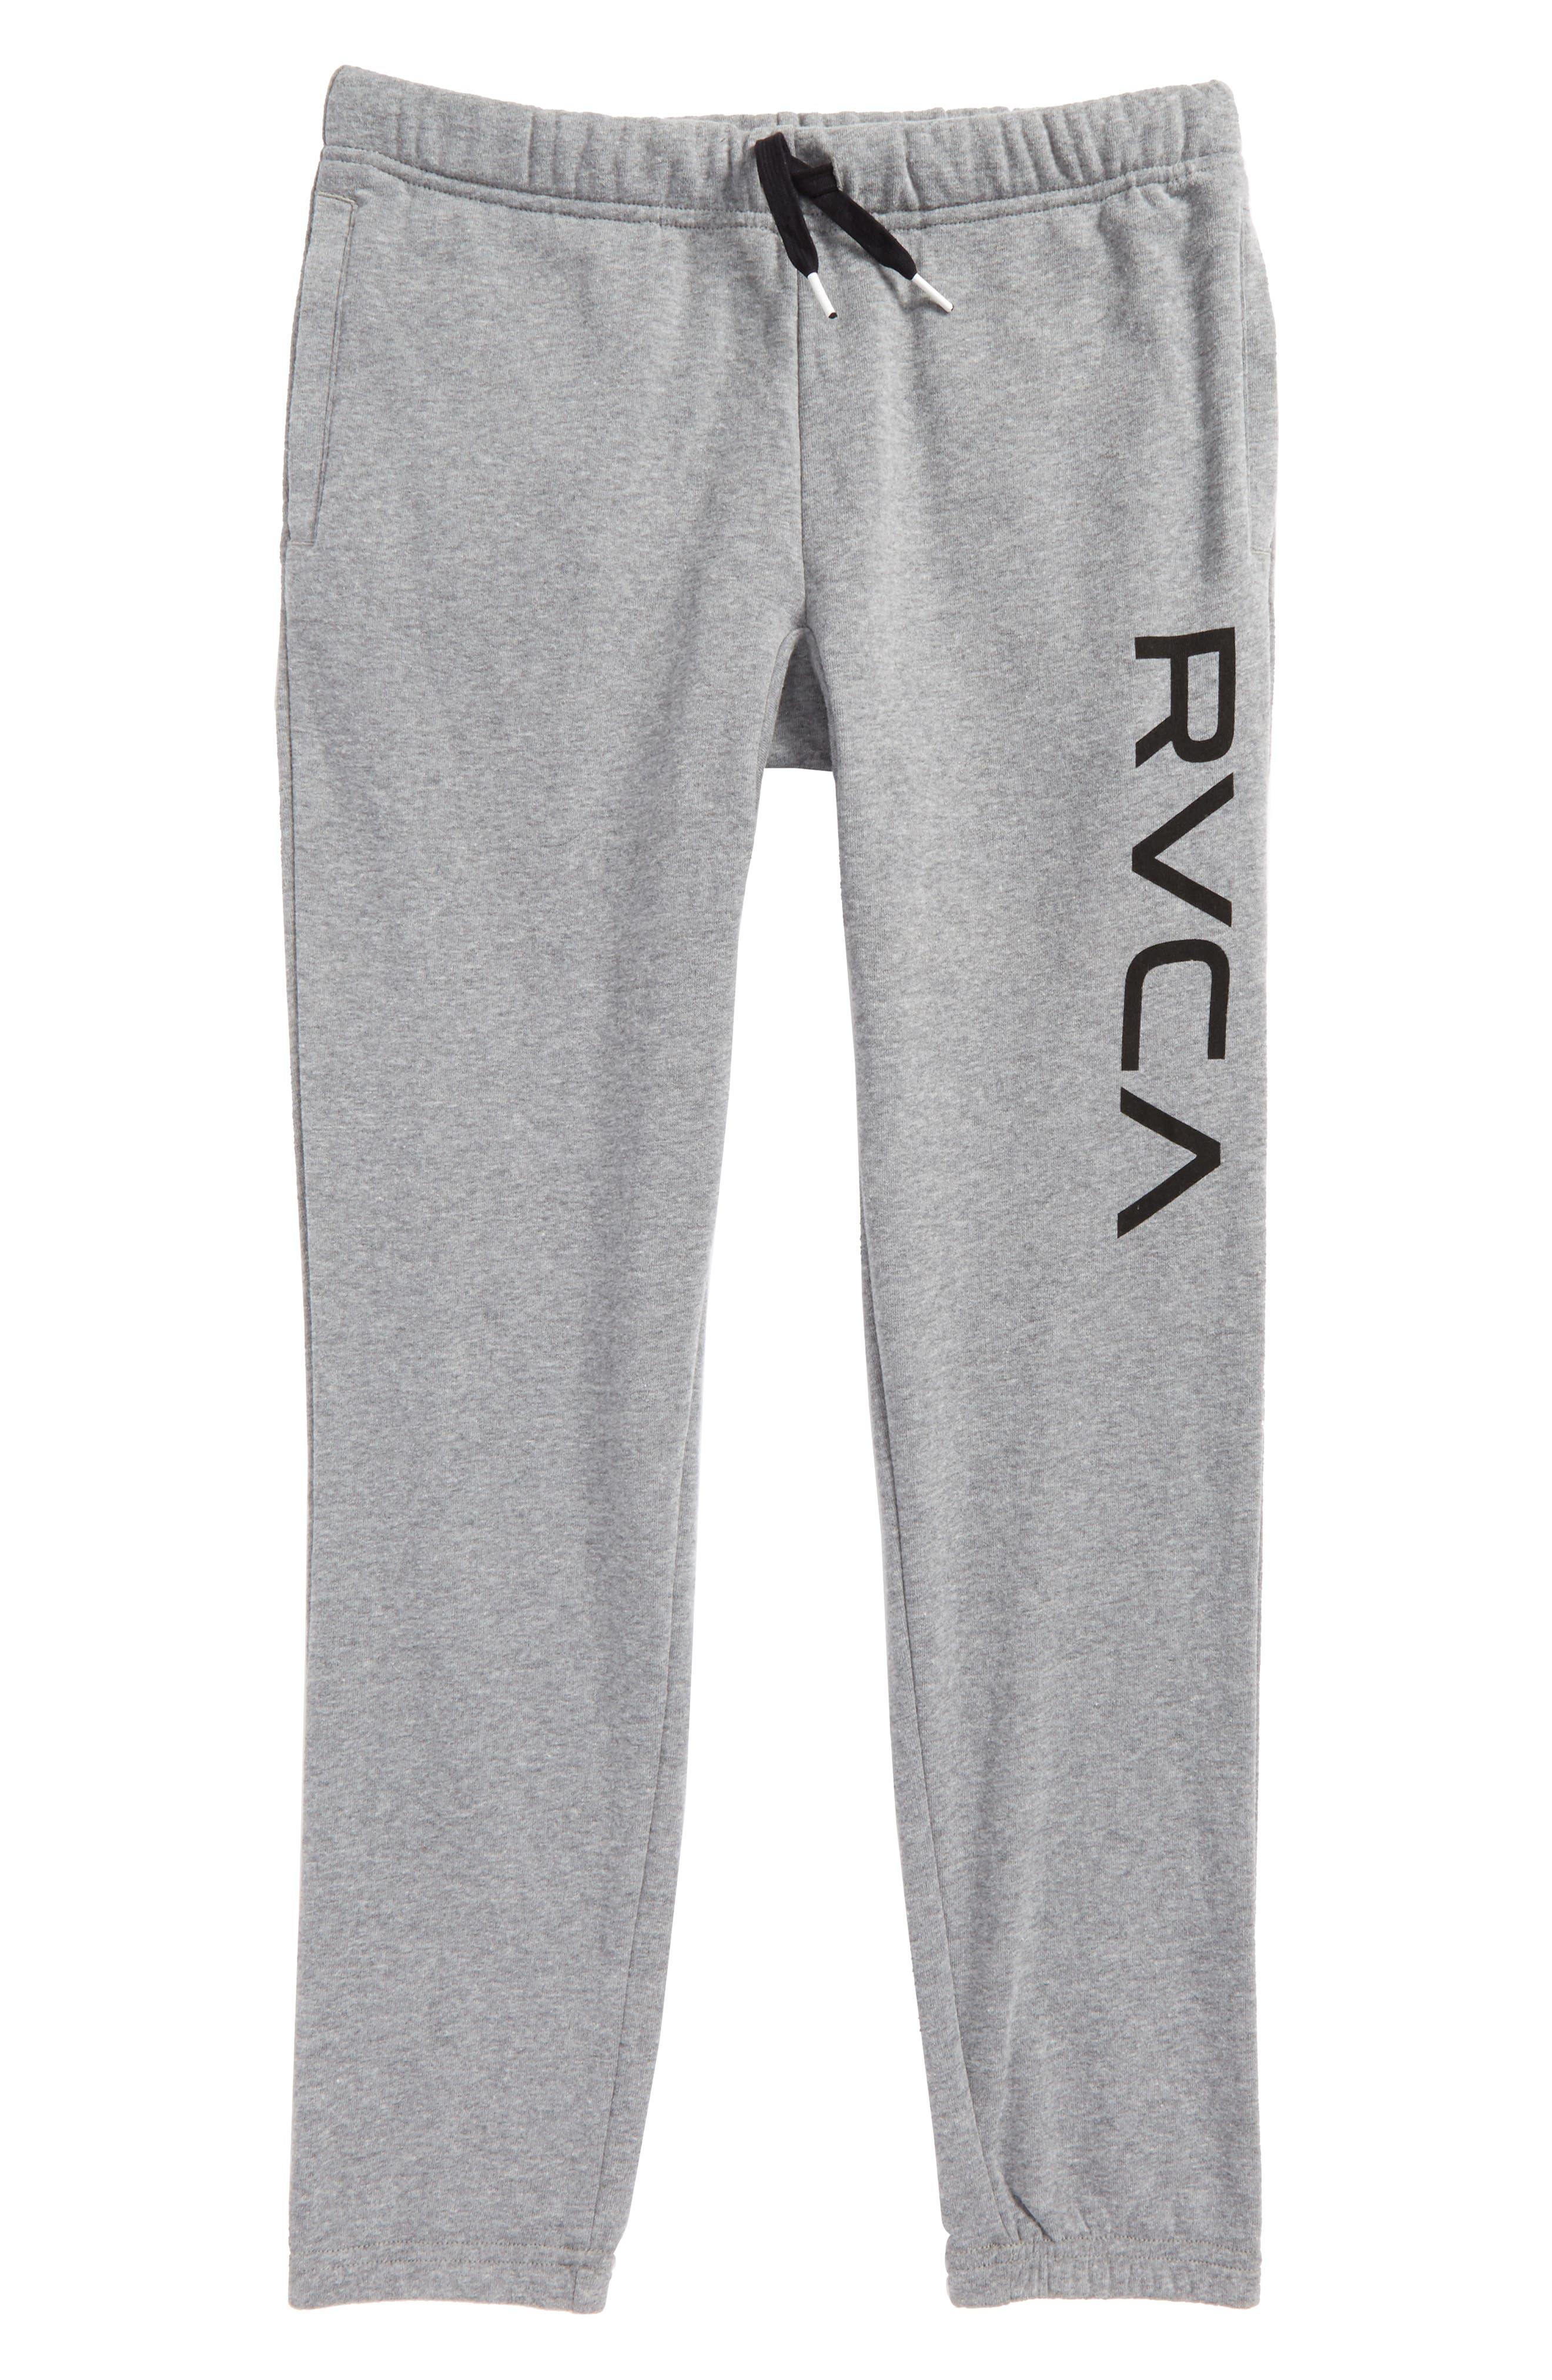 RVCA Big Logo Sweatpants (Big Boys)